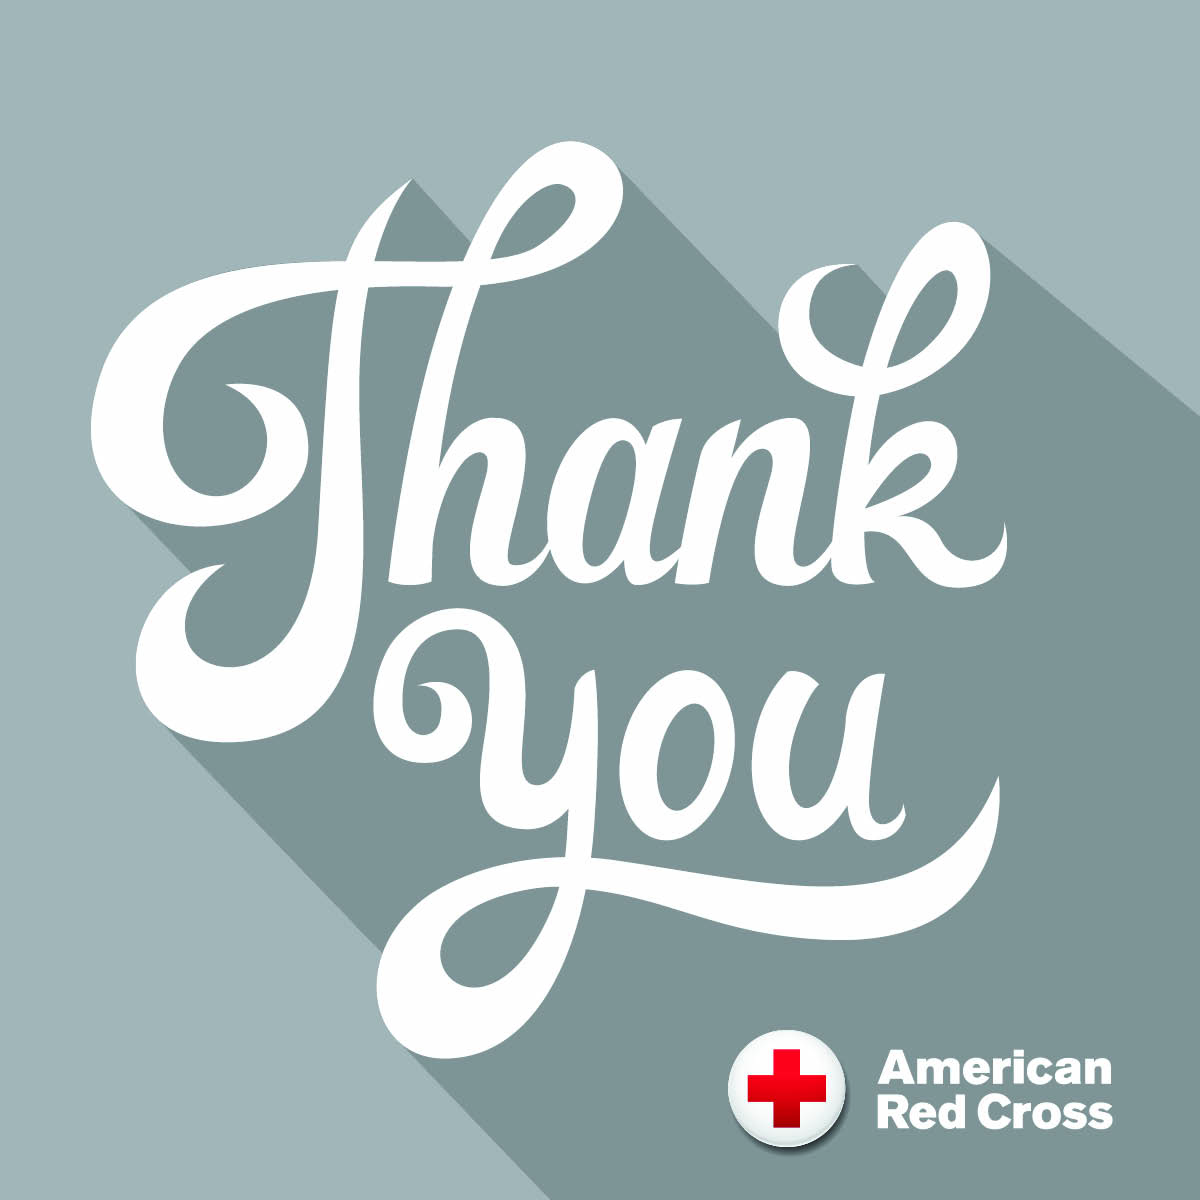 Thank you for supporting the Red Cross Mission